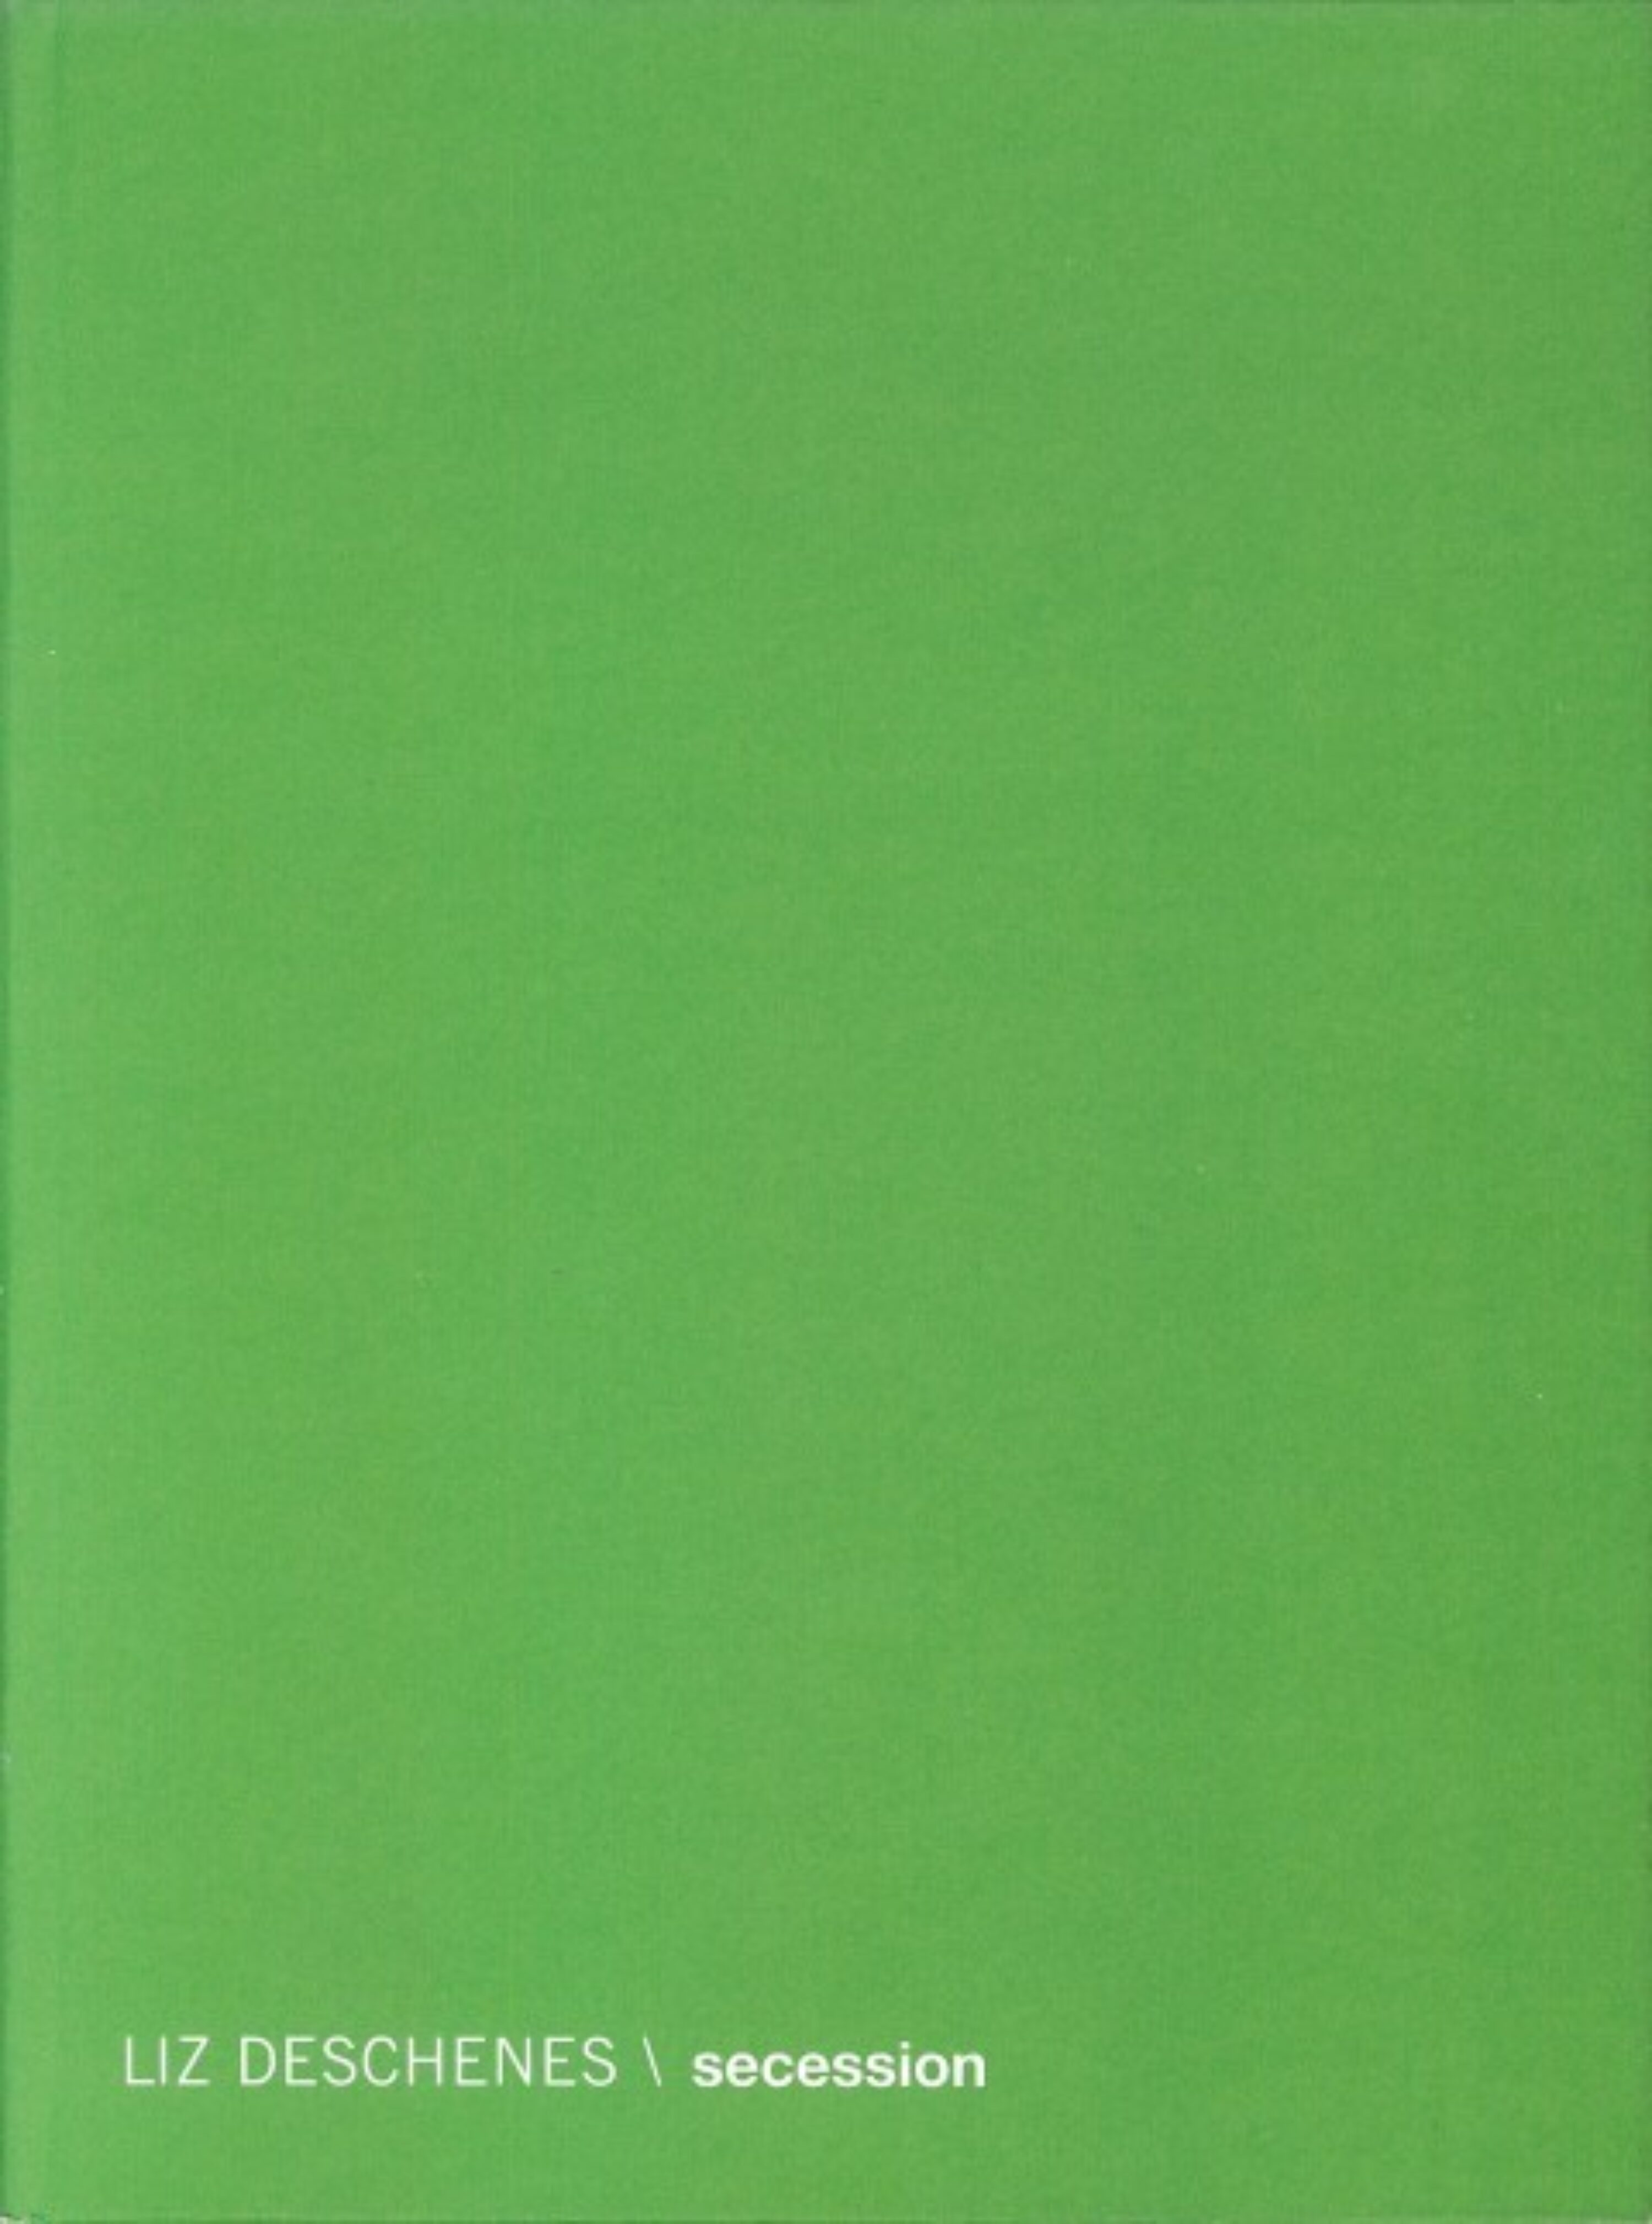 Image of the front cover of Liz Deschenes \ Secession